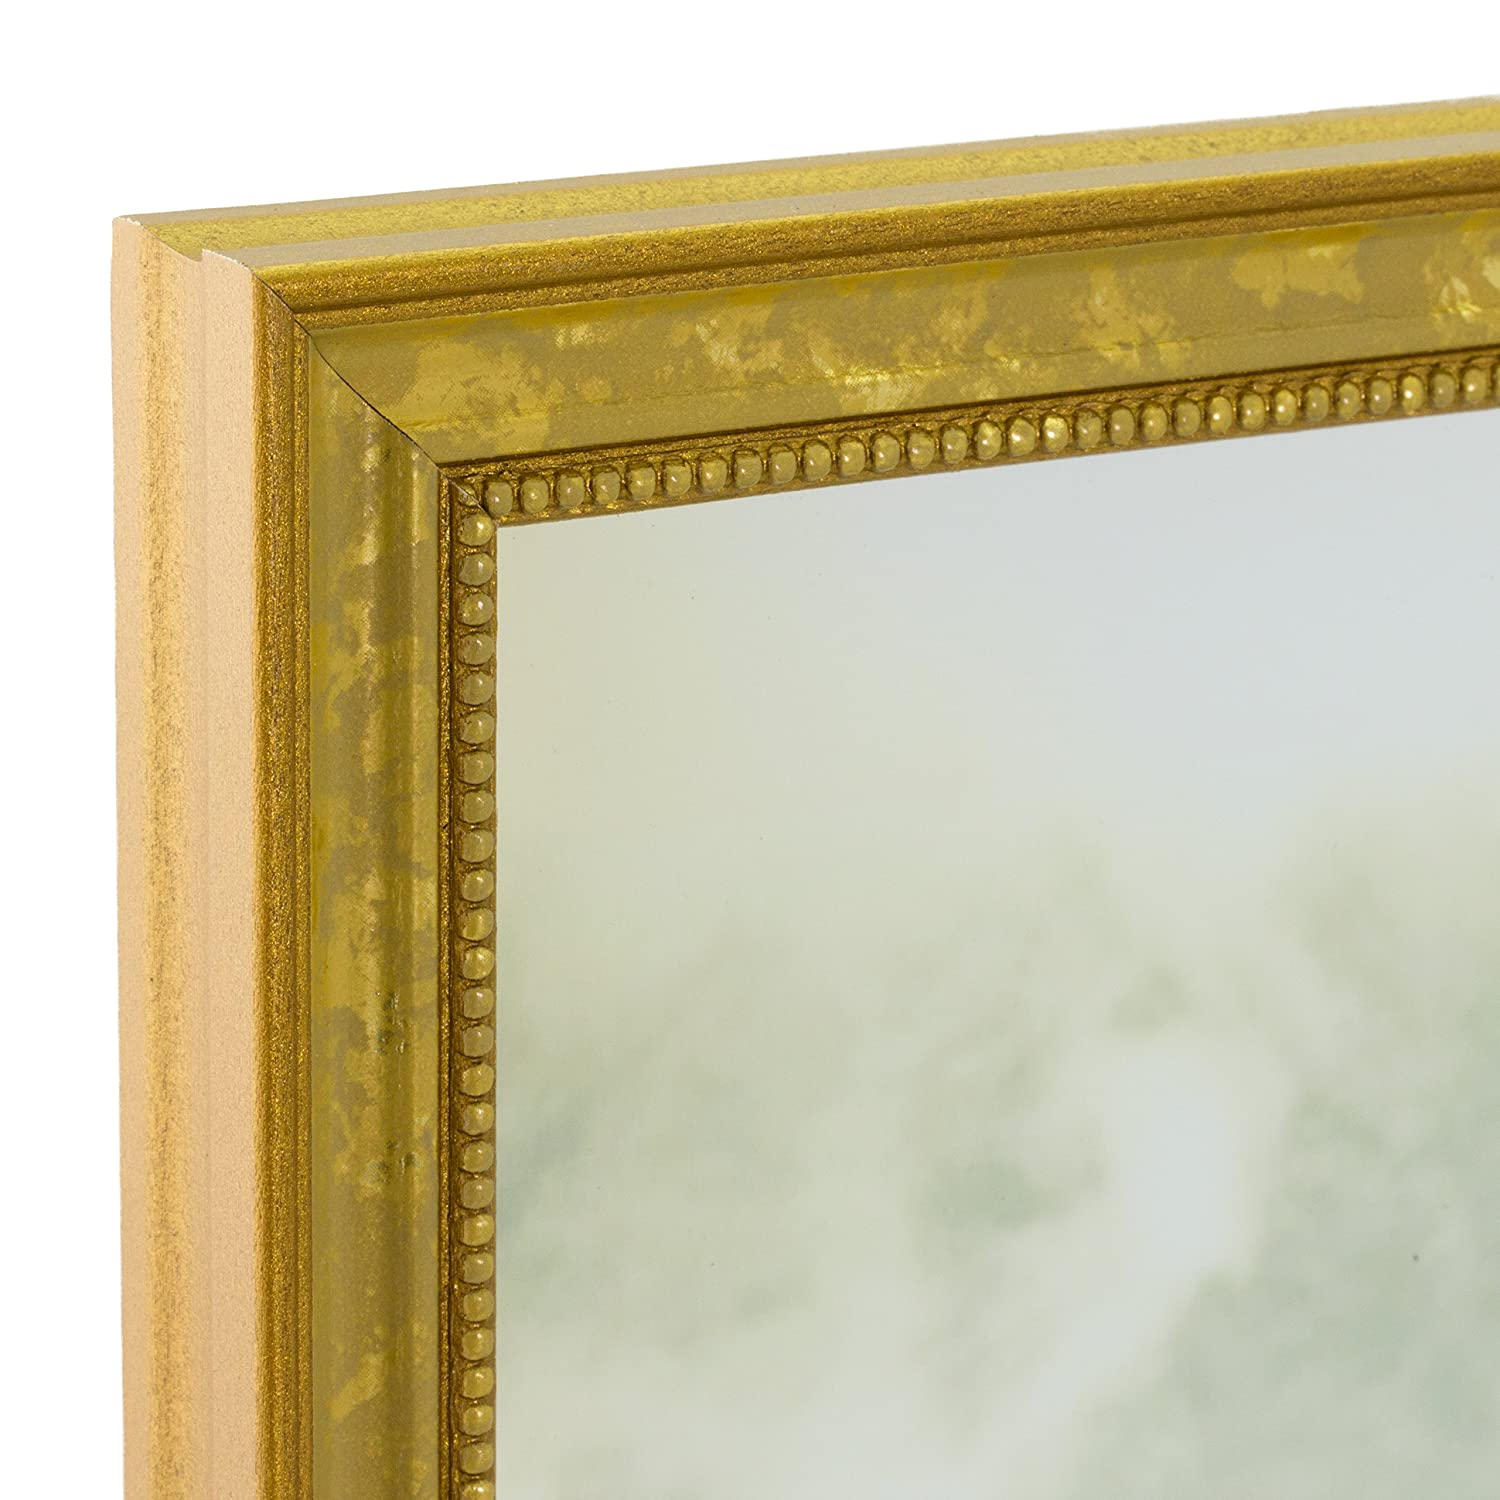 Amazon.com - Craig Frames 314GD 8 by 12-Inch Picture Frame, Ornate ...